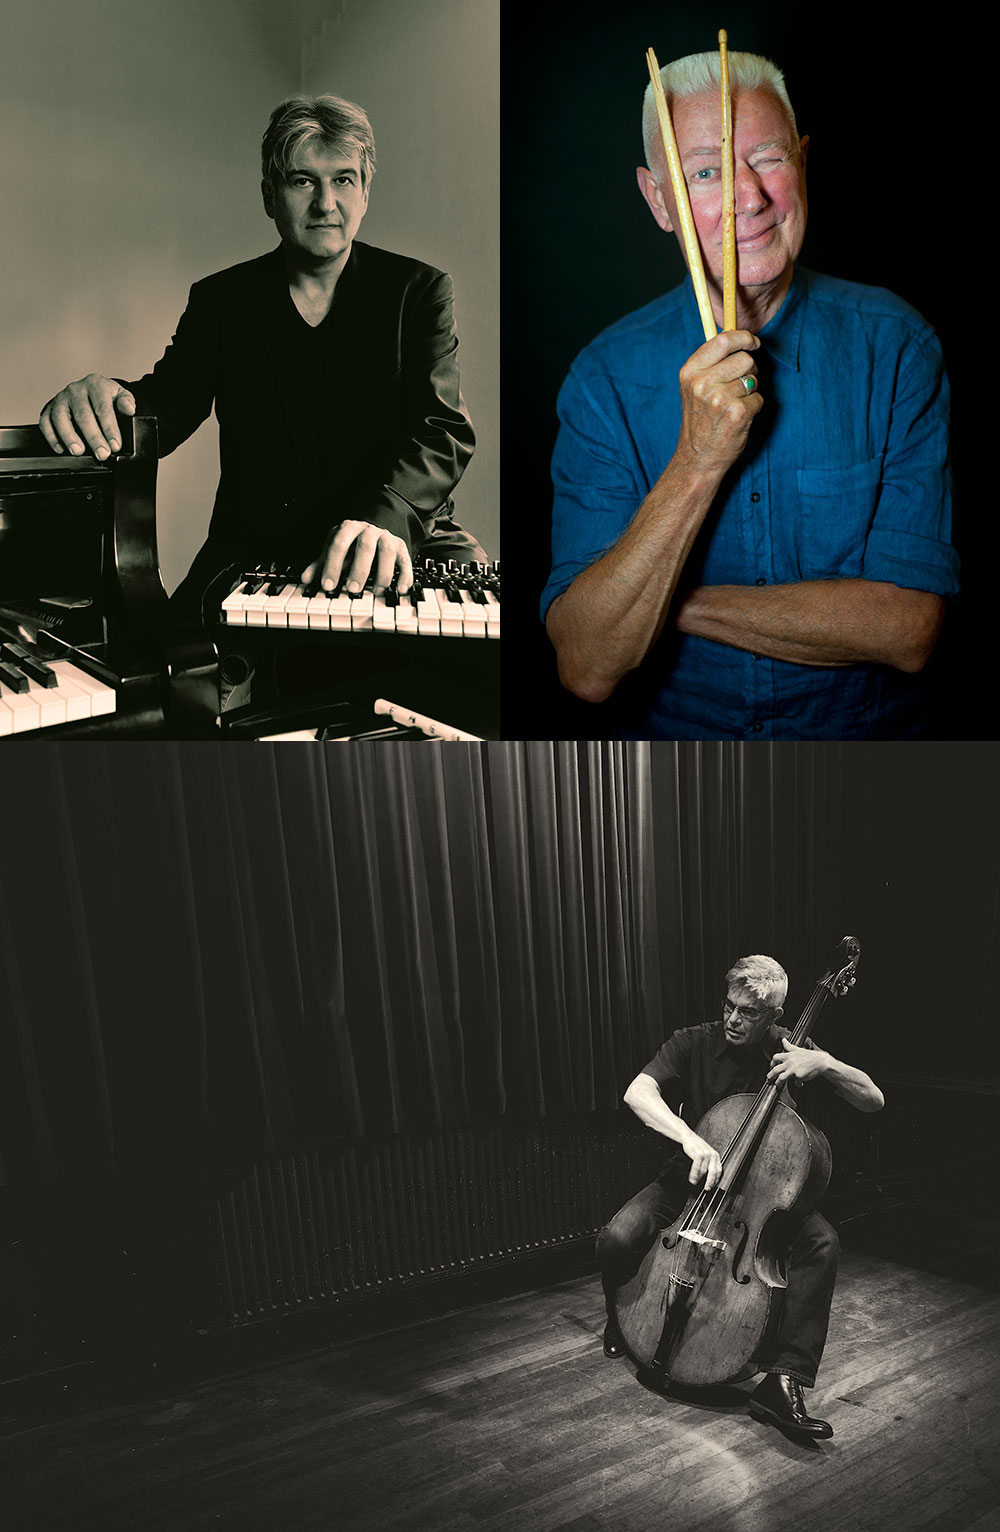 top left: Hans Lüdemann © Volker Beushausen ; top right: Han Bennink © Andreas Terlaak ; bottom: Wilbert de Joode © Sara Anke